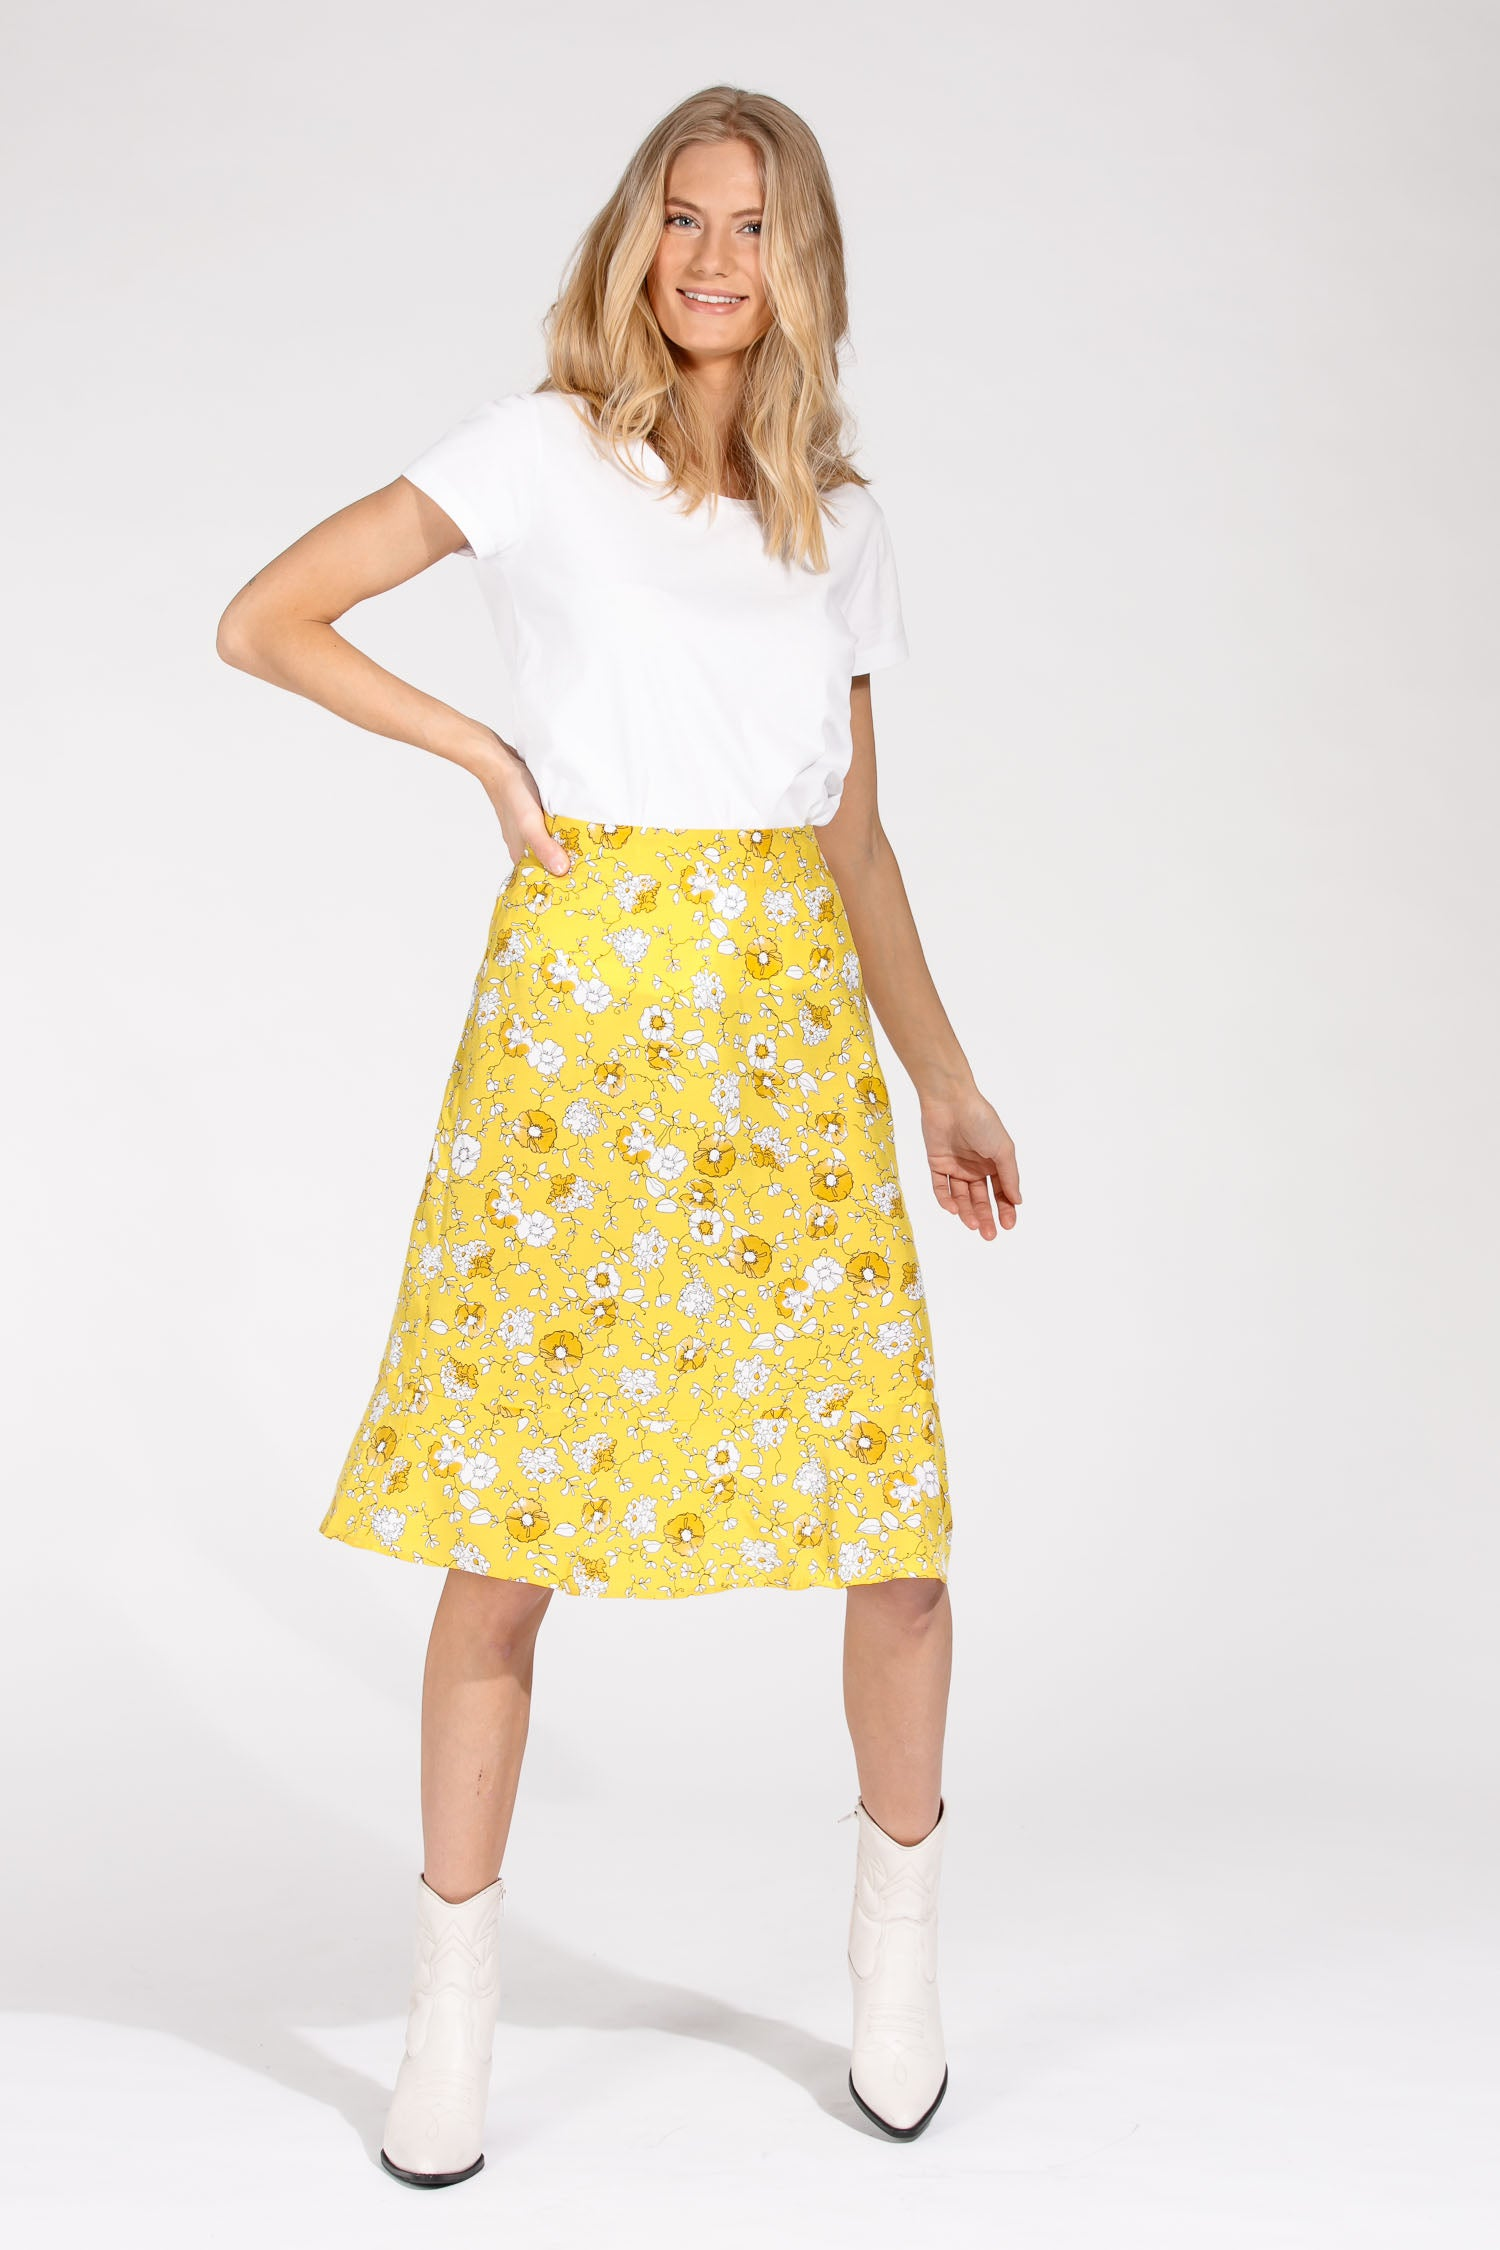 Yellow mellow skirt - Yellow